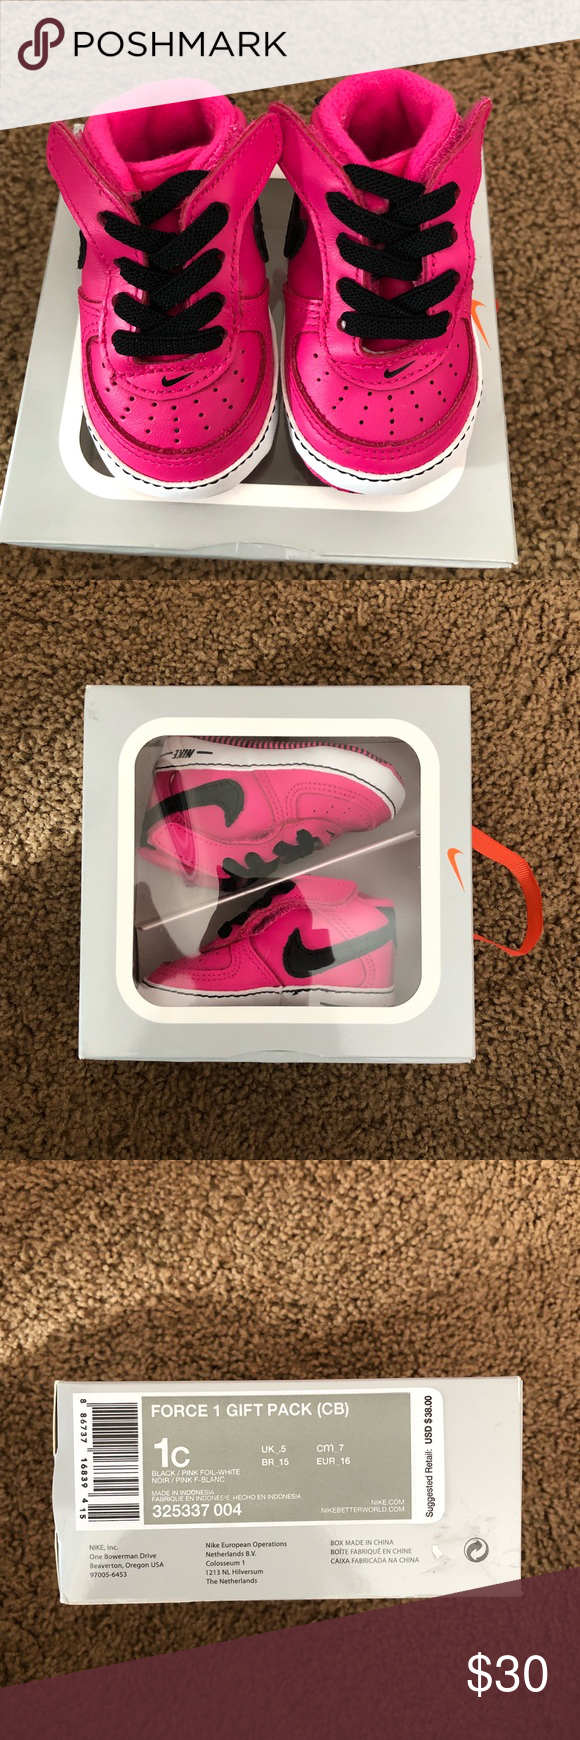 3ab334103dbc4 Nike Pink Air Force 1 Soft Shoes PRICE FIRM Brand new in box Nike pink Air  Force 1s. No need for these since they don t fit my daughter. Nike Shoes  Baby   ...